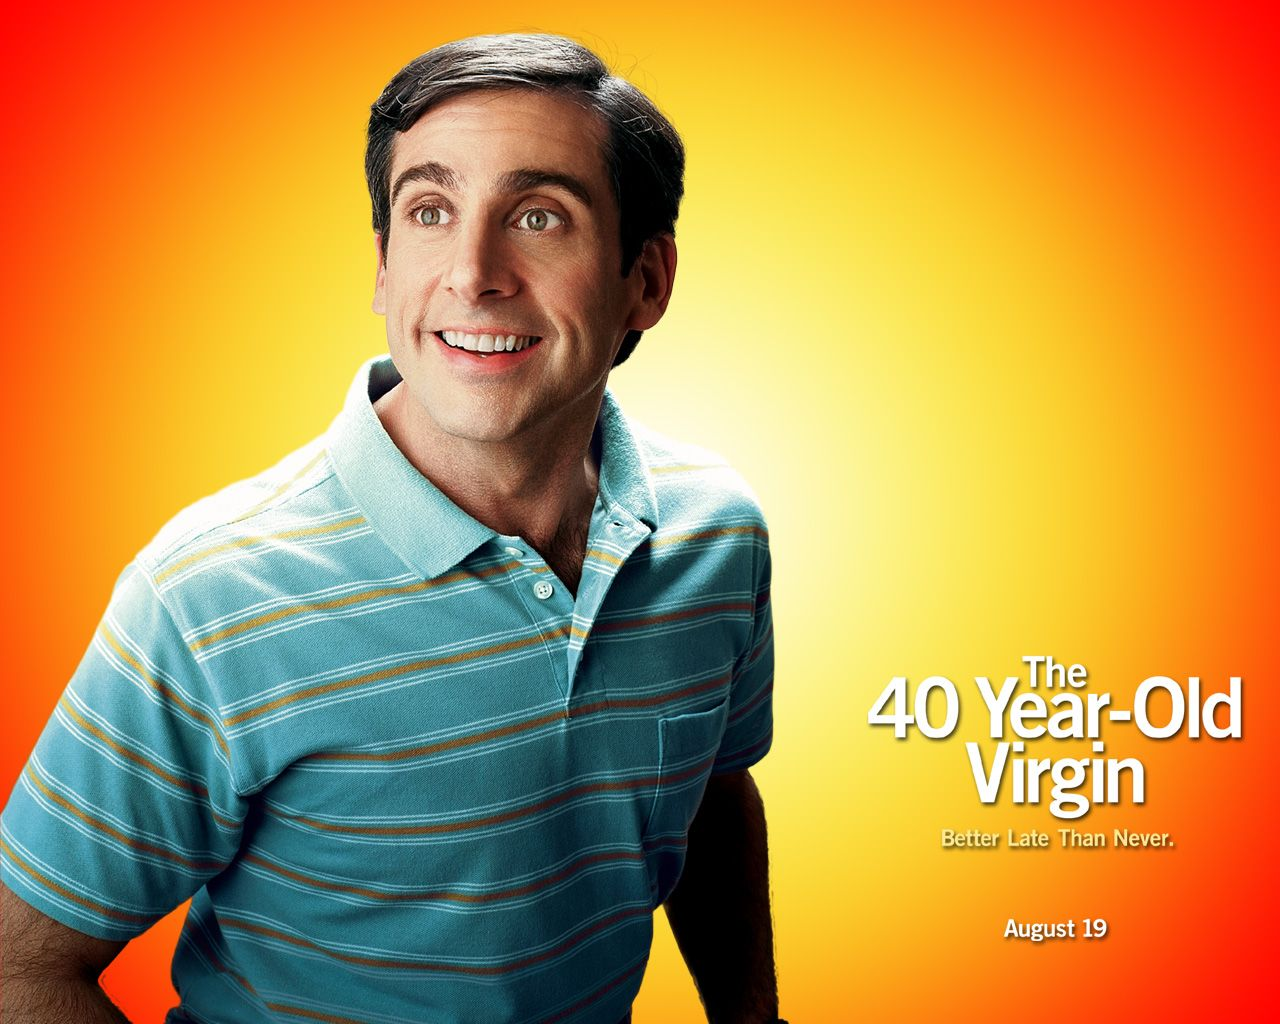 Pin By Jacquelyn Koenig On Have A Laugh 40 Year Old Virgin Steve Carell 40 Years Old